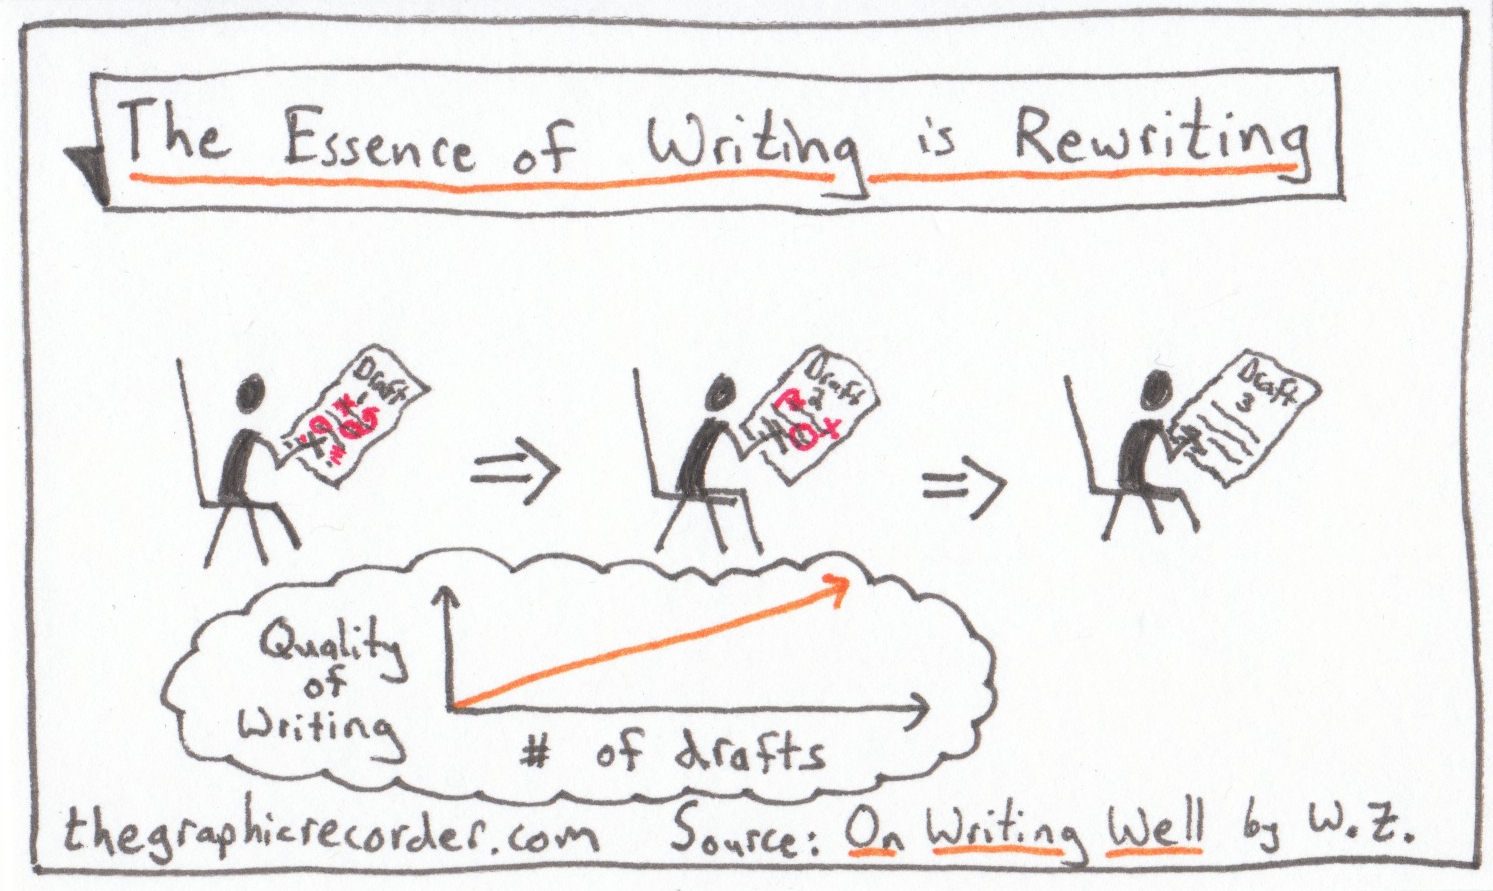 The essence of writing is rewriting